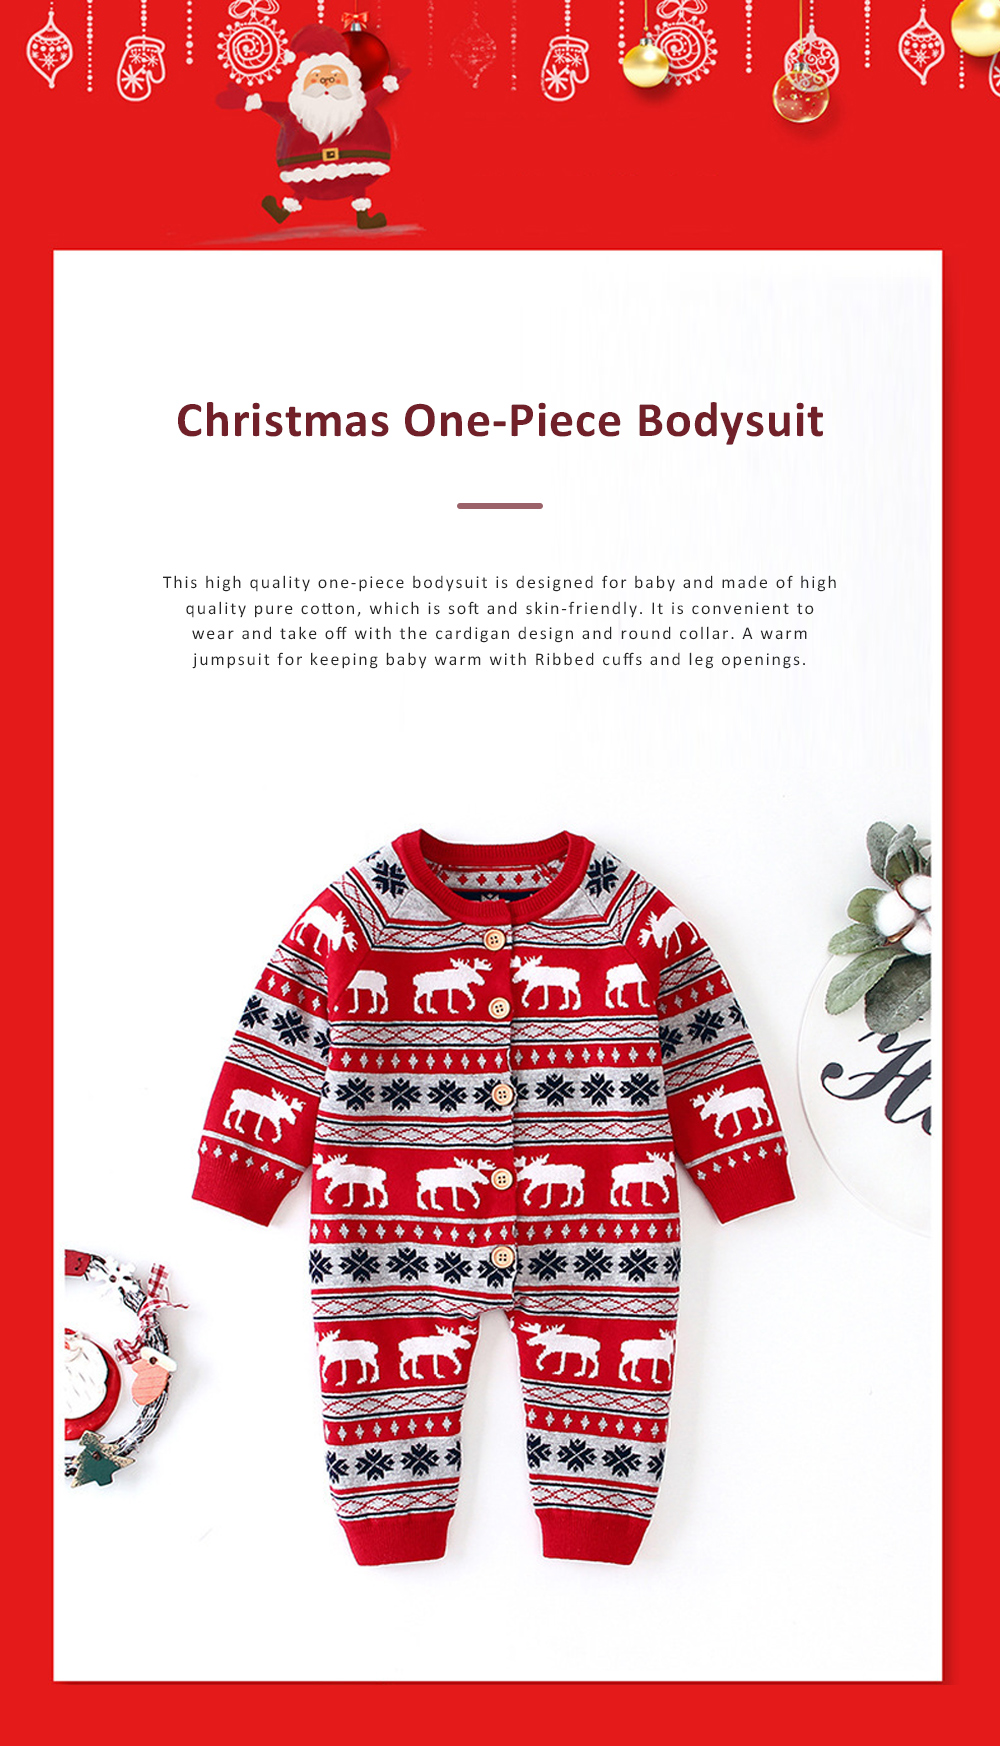 Christmas One-Piece Bodysuit for Baby Long Sleeve Cardigan Jumpsuits with Classic Round Collar and Ribbed cuffs for Boys and Girls 0